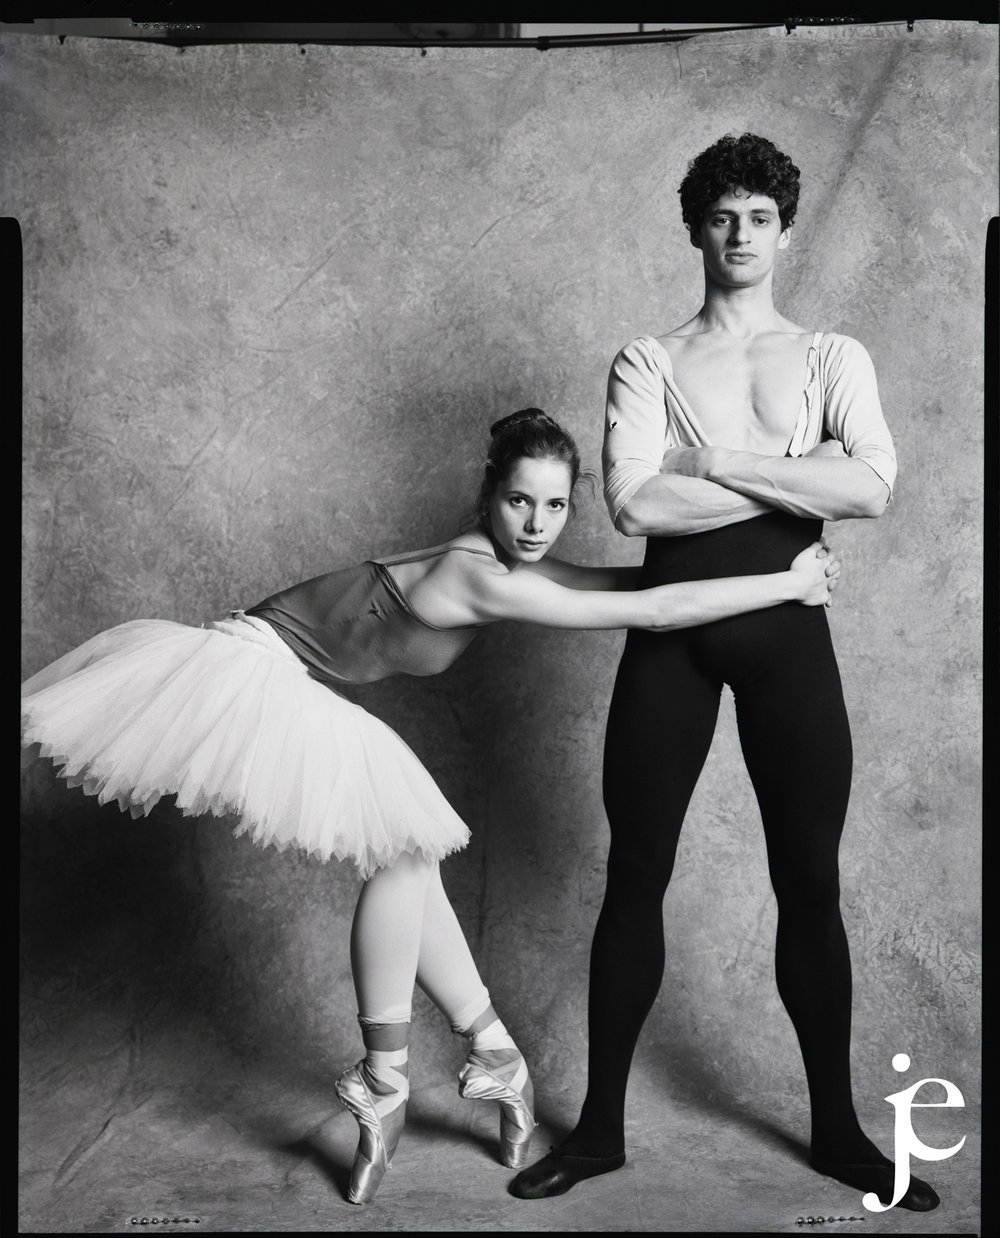 Ballet Dancers Darcey Bussel and Jonathan Cope at the Royal Opera House, London 1993